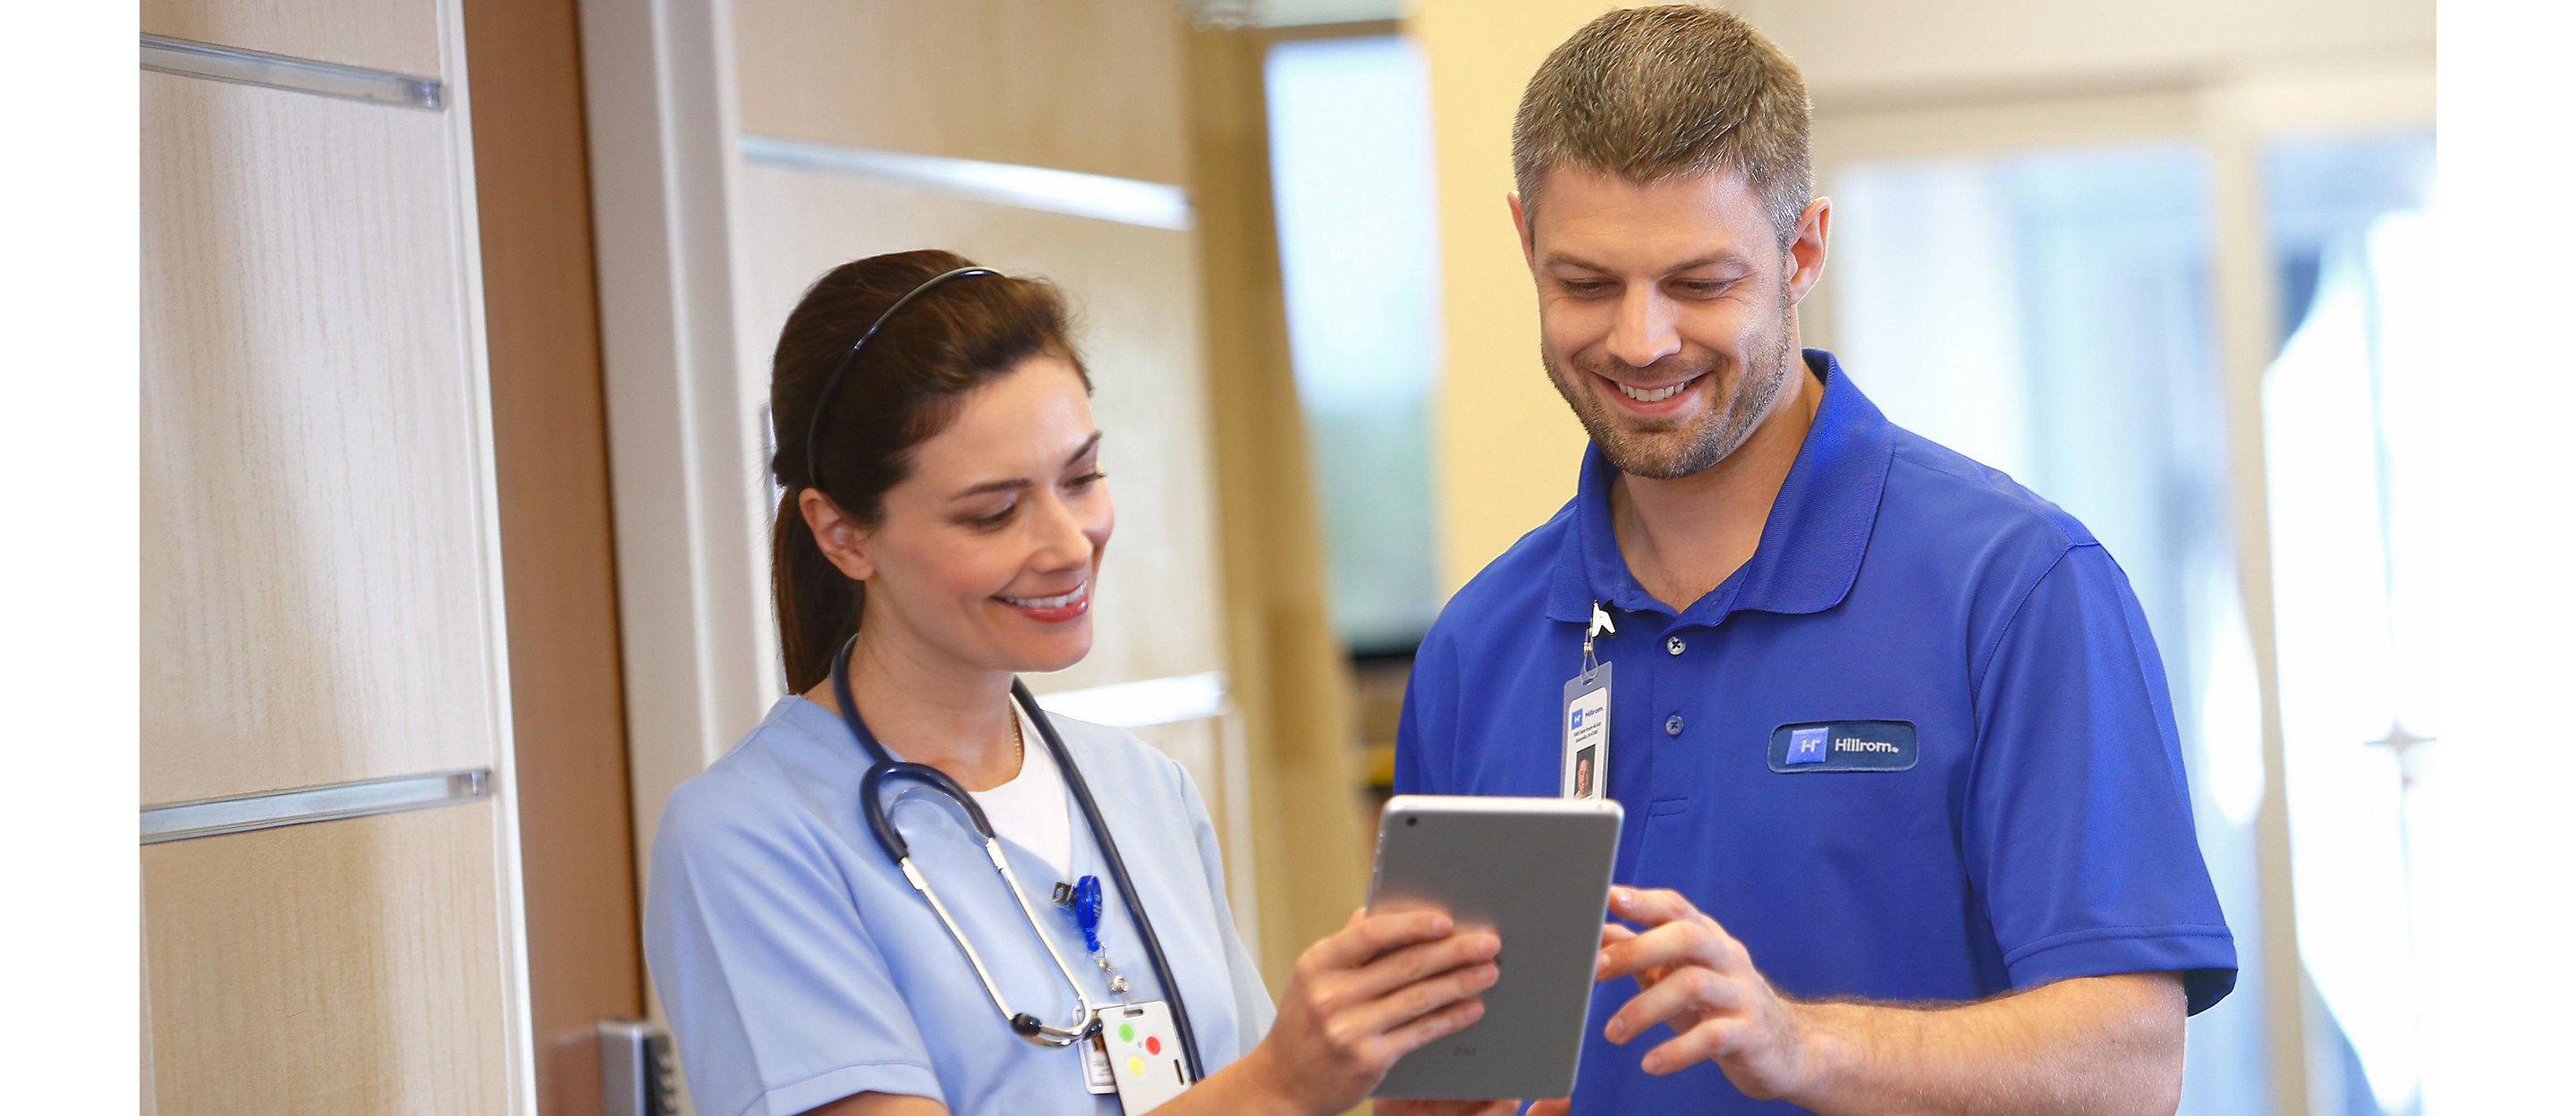 A Hillrom support representative looks at a tablet with a clinician in a hospital corridor